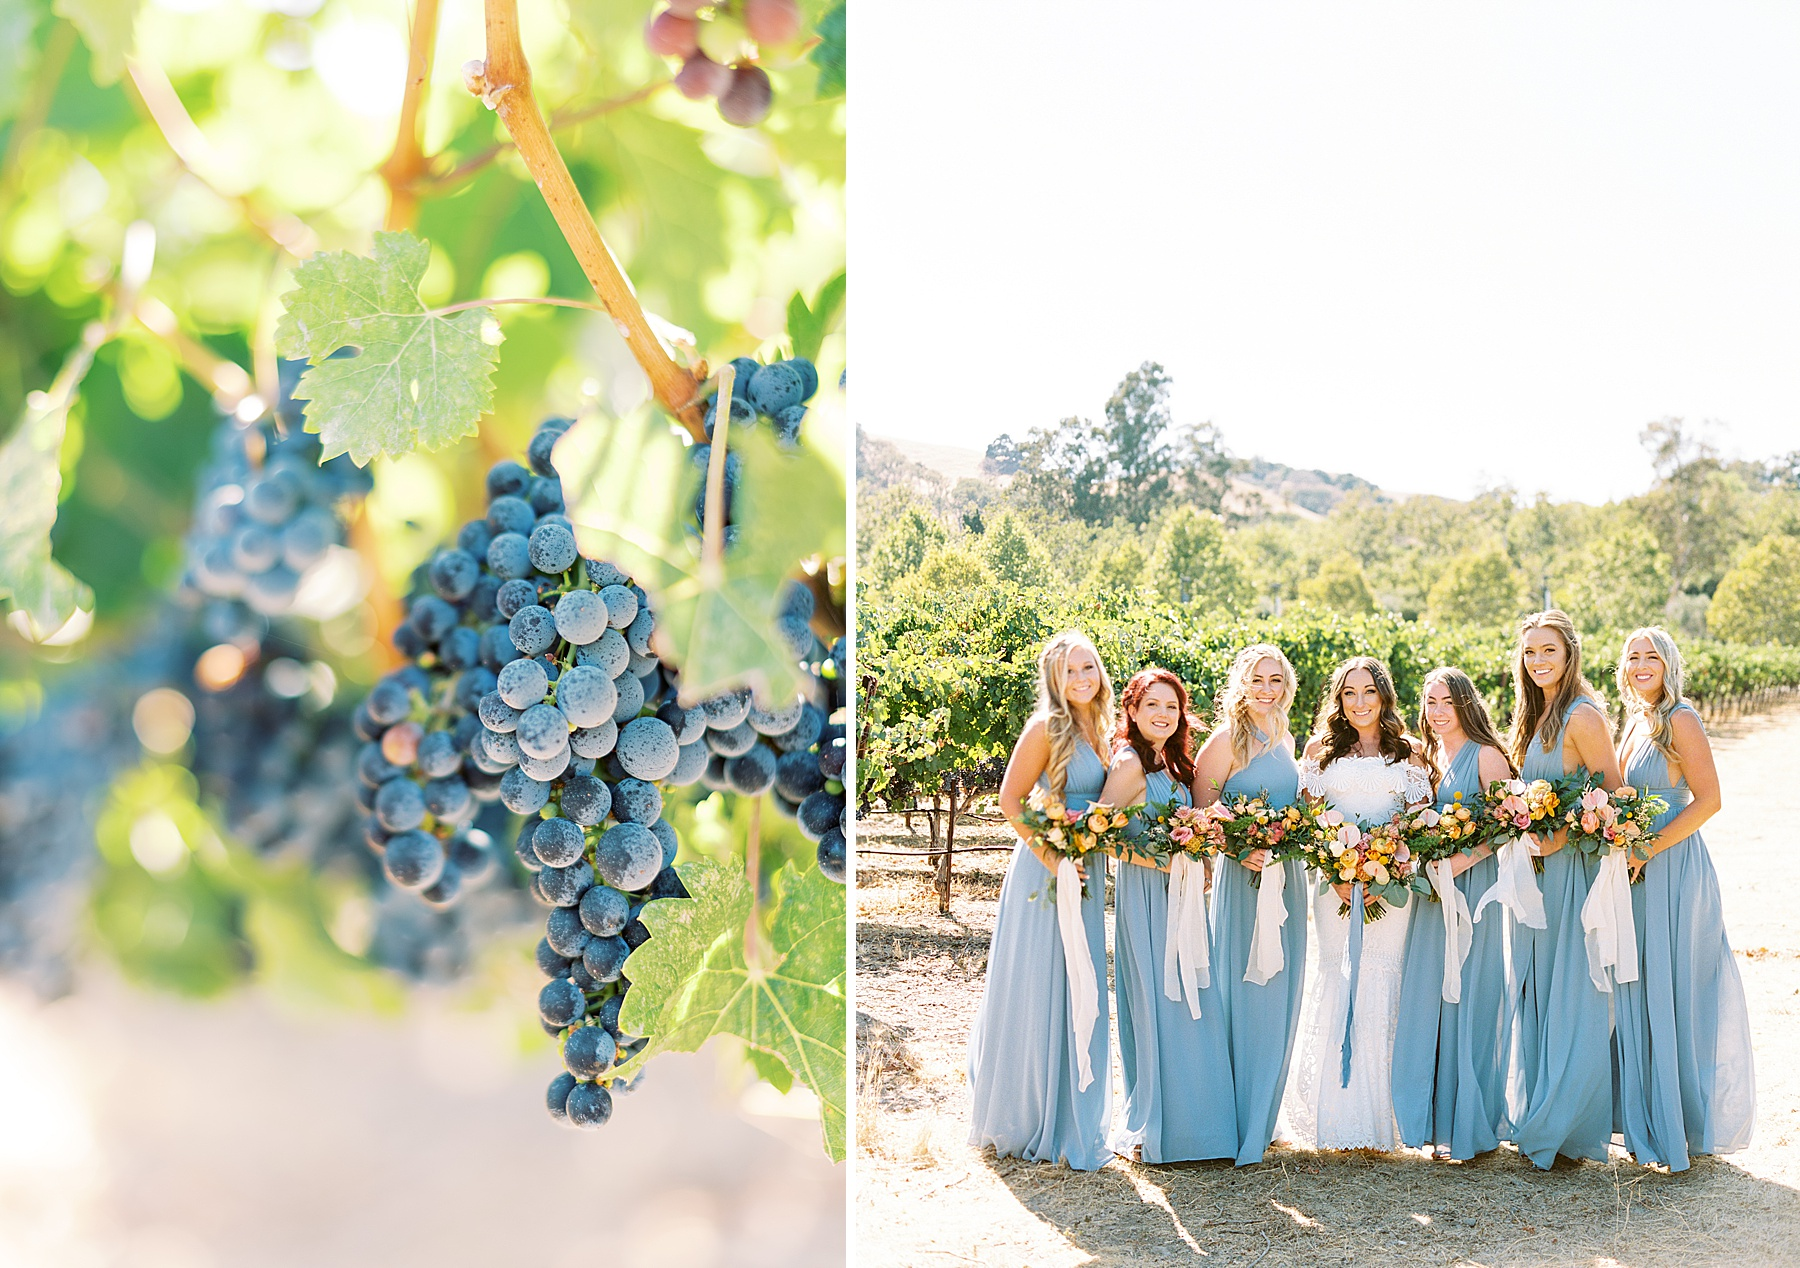 Wente Wedding with A Tropical Color Palette - Ashley & Mike - Featured on Inspired by This - Ashley Baumgartner_0019.jpg